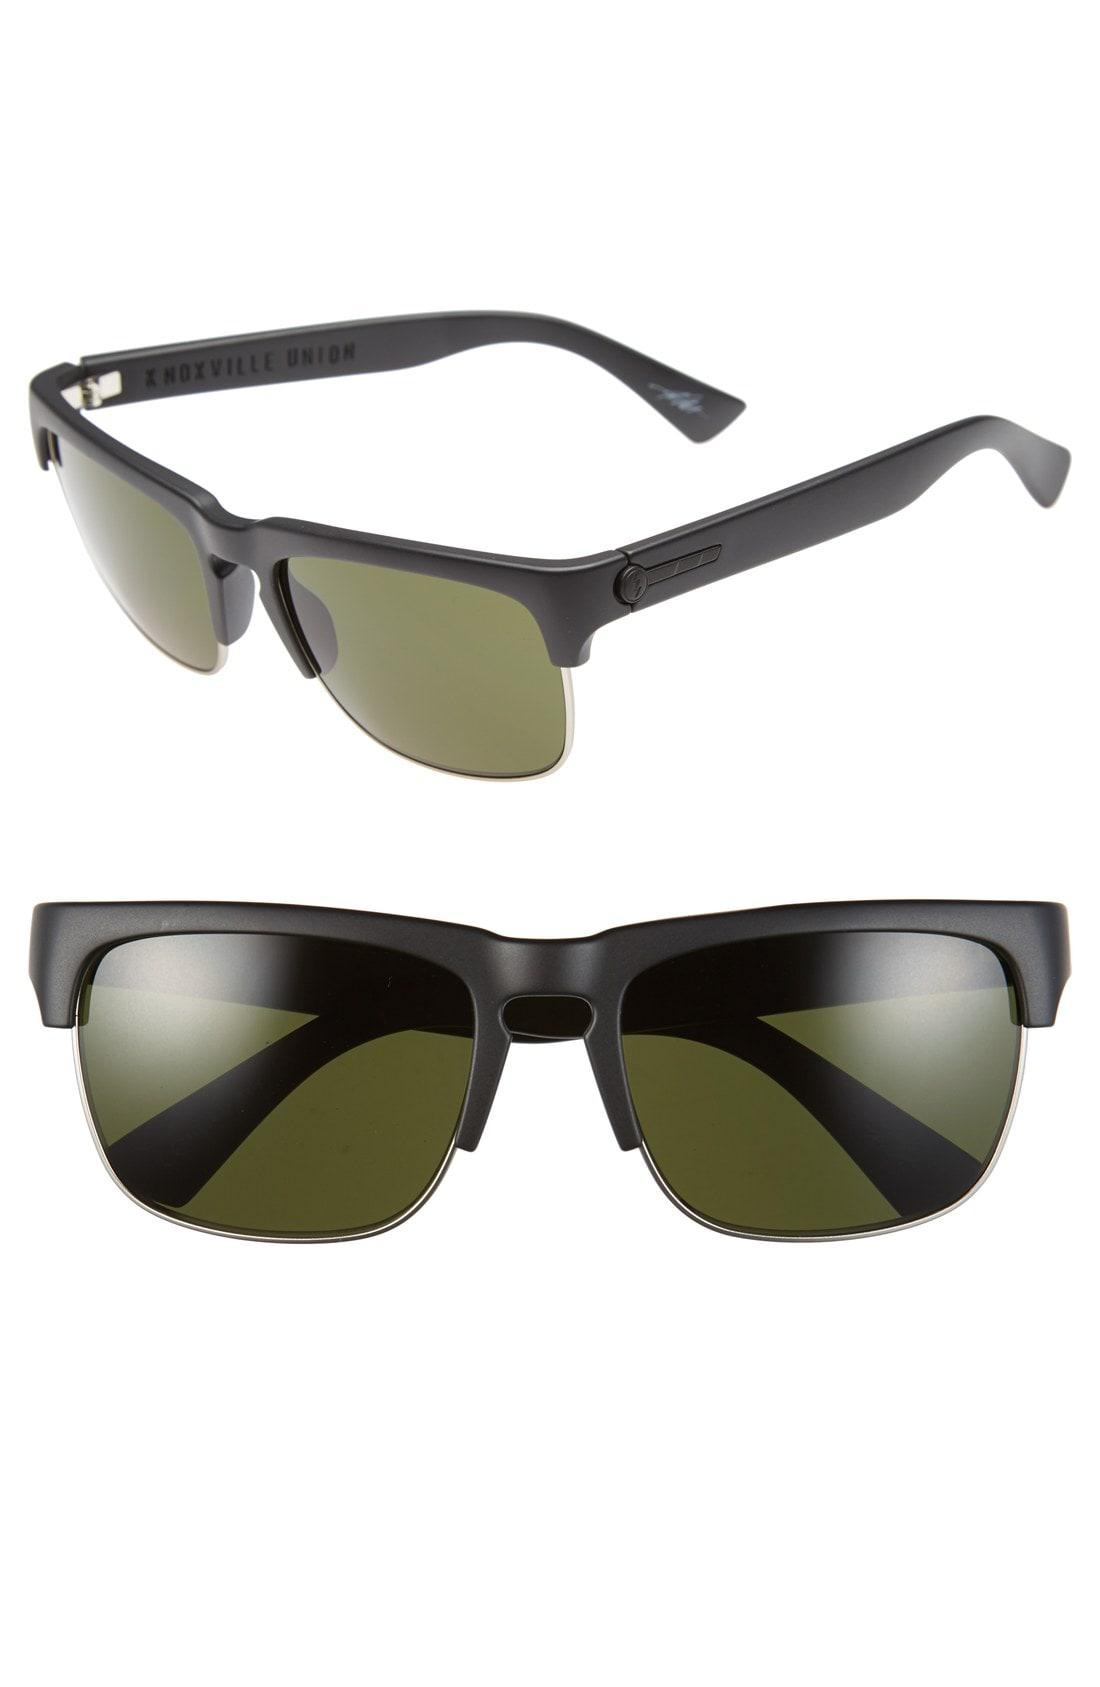 d39a42d384e Lyst - Electric  knoxville Union  55mm Sunglasses in Black